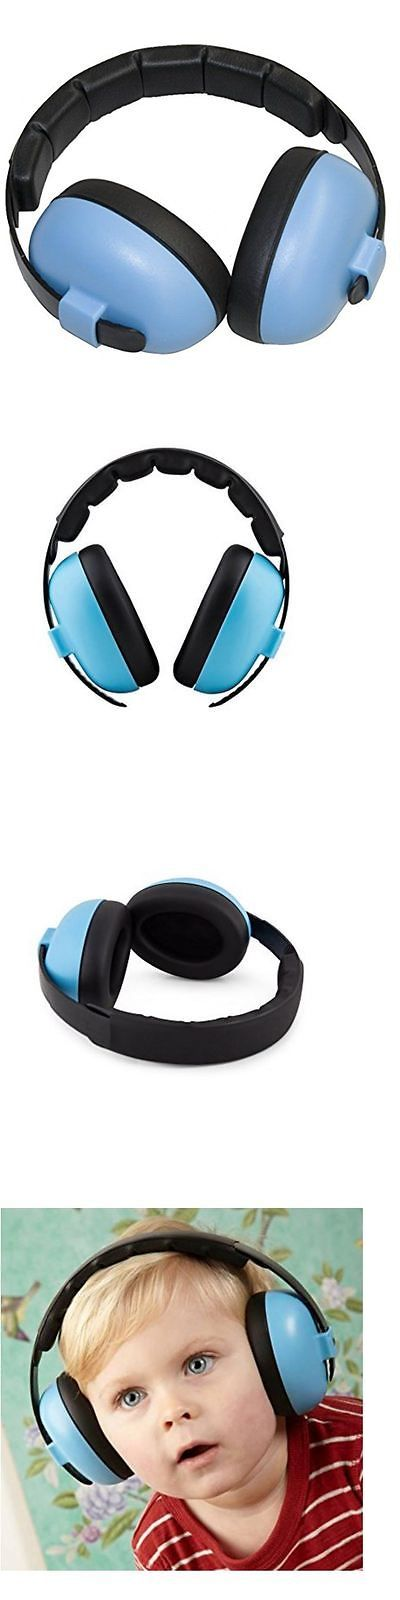 Hearing Protection Earmuffs 184343: Baby Infant Toddler Kid Hearing Protection Earmuff Noise Cancelling Headphone -> BUY IT NOW ONLY: $32.95 on eBay!